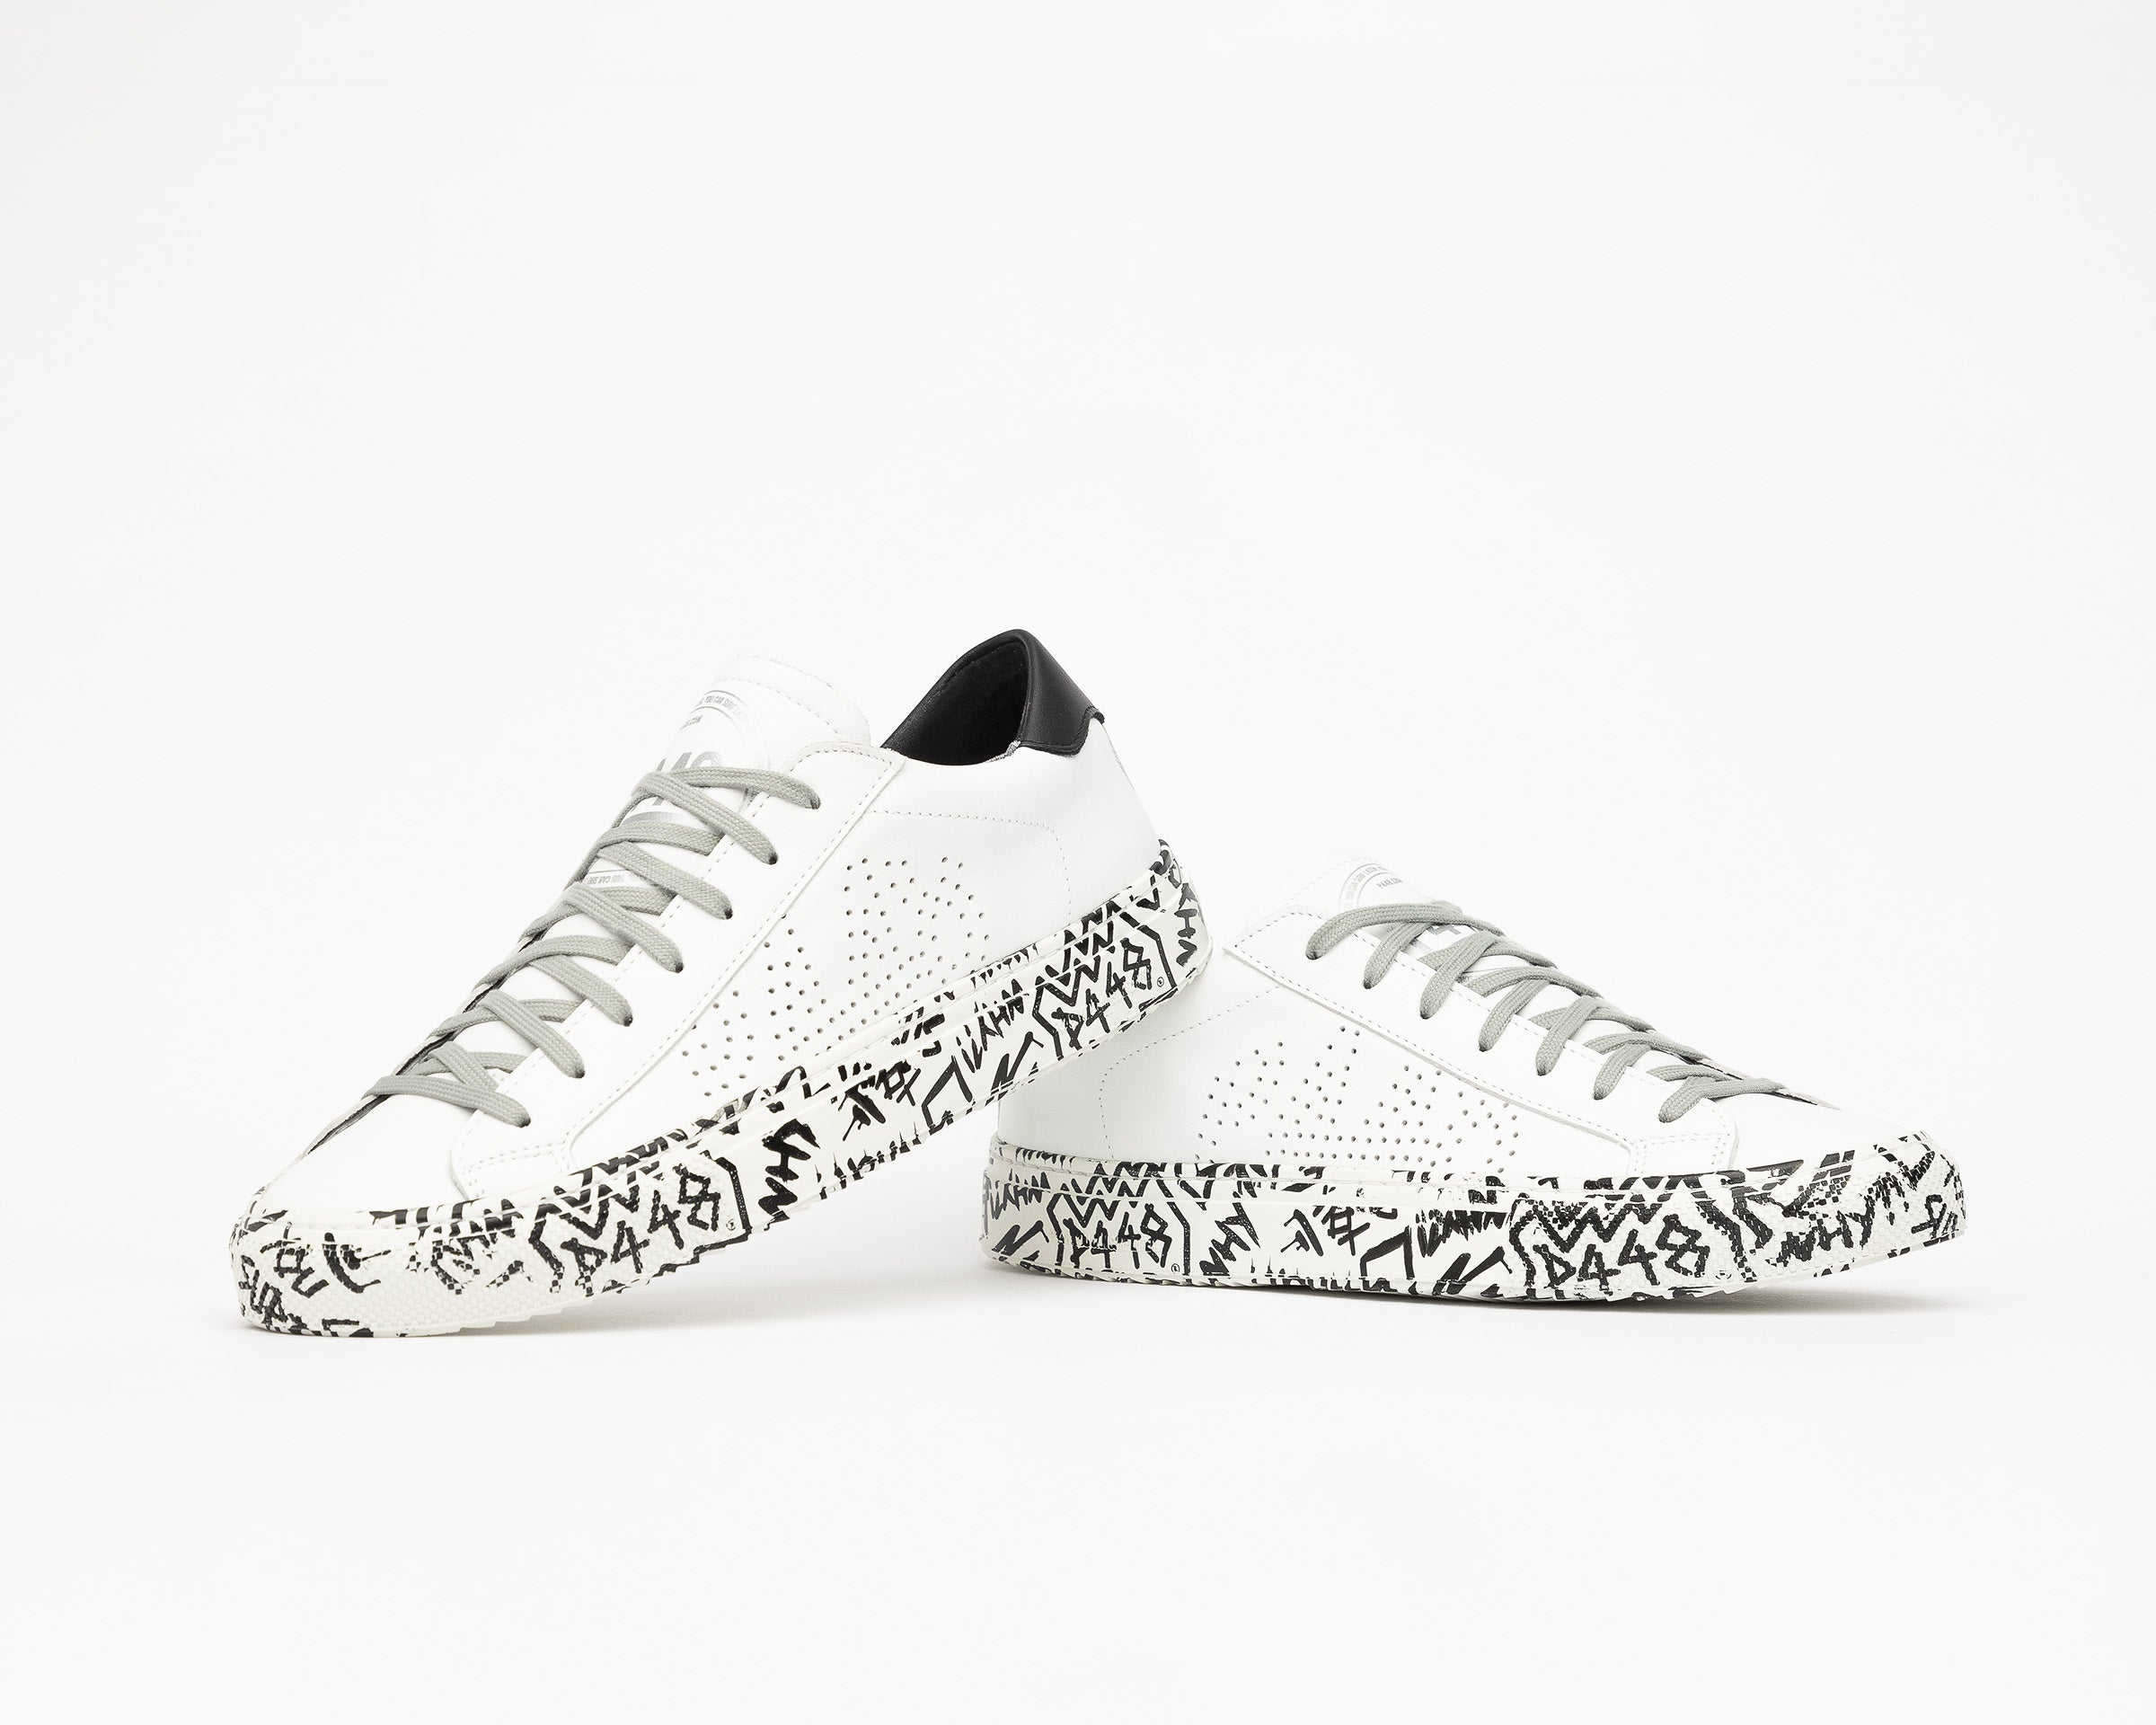 JohnP Low-Top Sneaker in White/P448 Sole - Detail 1